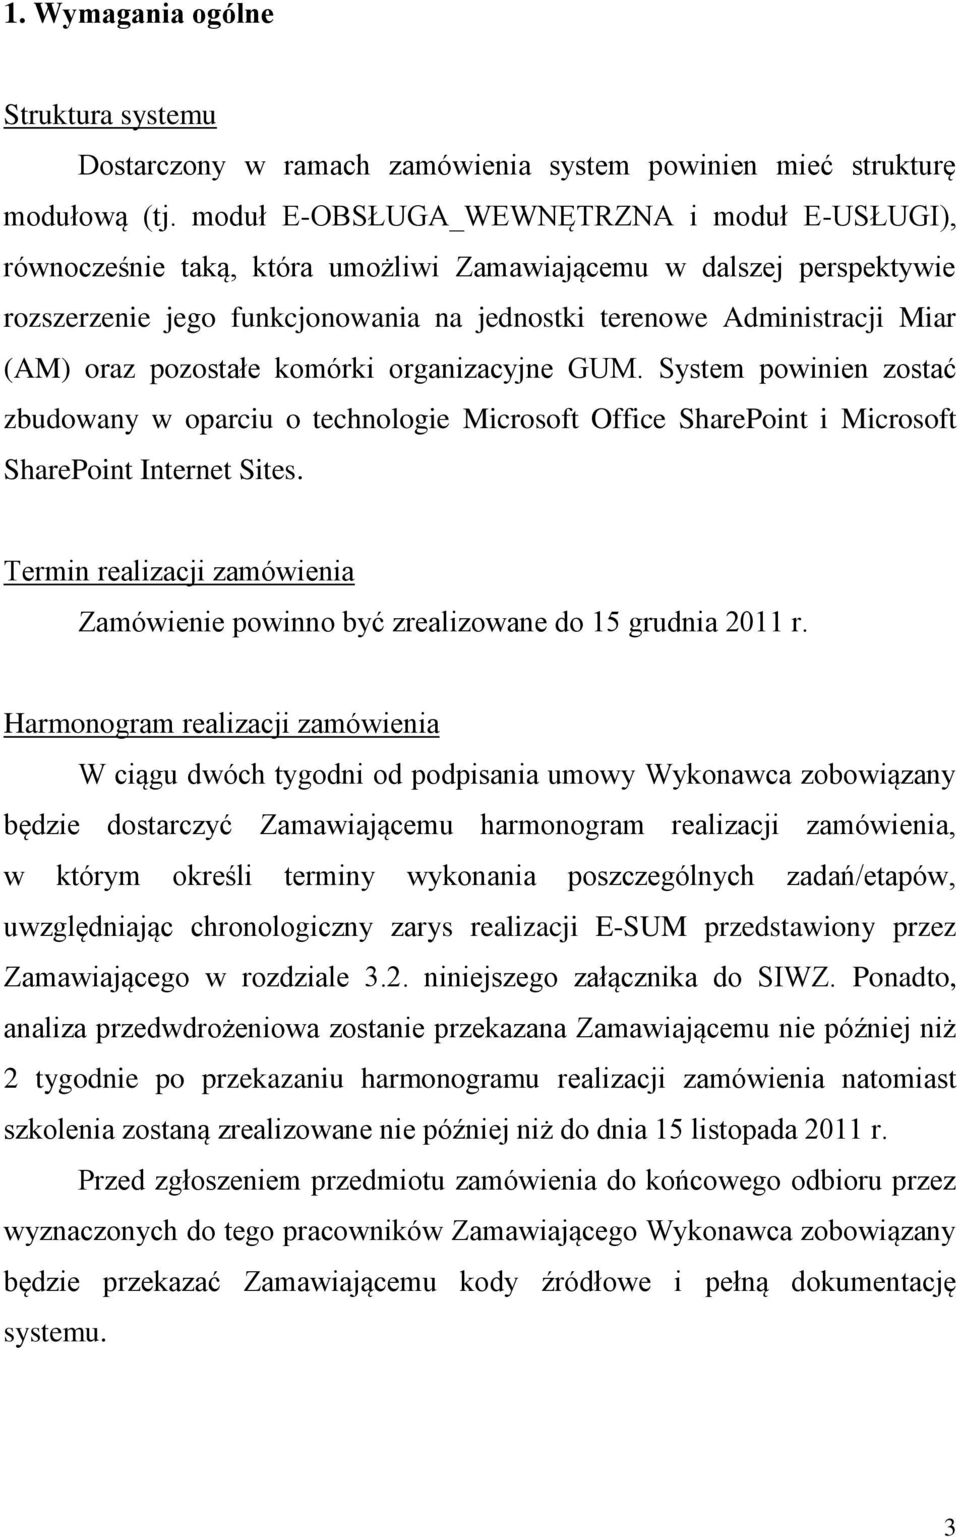 oraz pozostałe komórki organizacyjne GUM. System powinien zostać zbudowany w oparciu o technologie Microsoft Office SharePoint i Microsoft SharePoint Internet Sites.